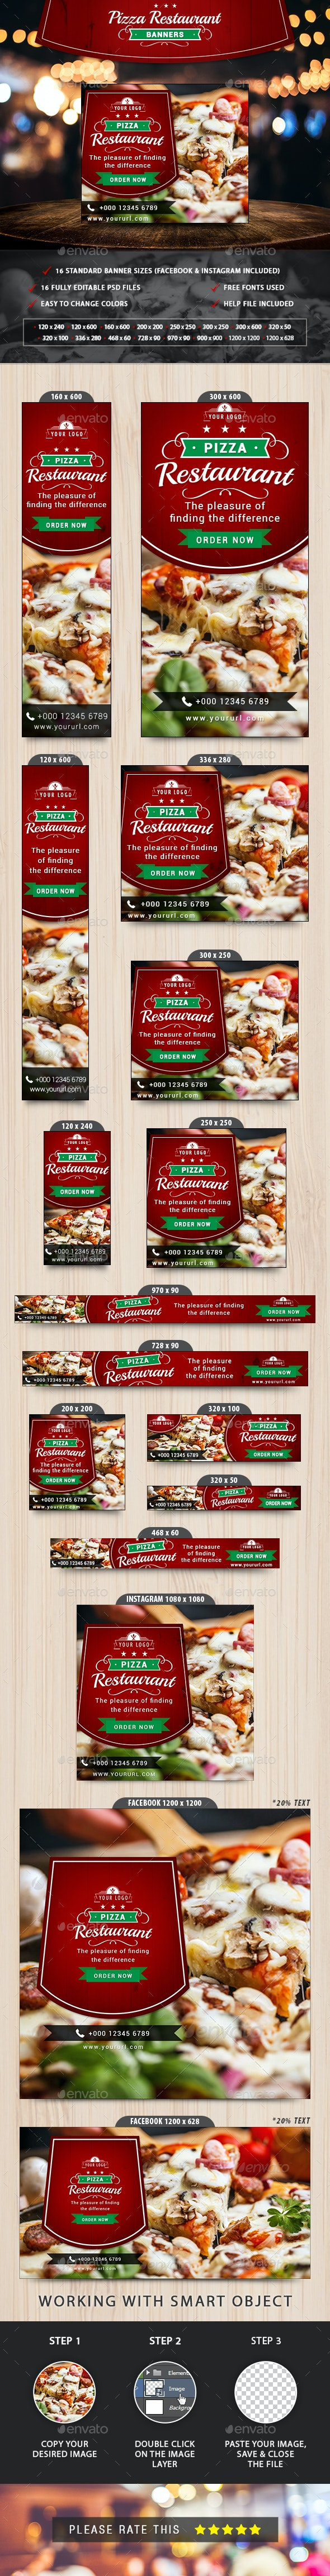 Pizza Restaurant Banners - Banners & Ads Web Elements